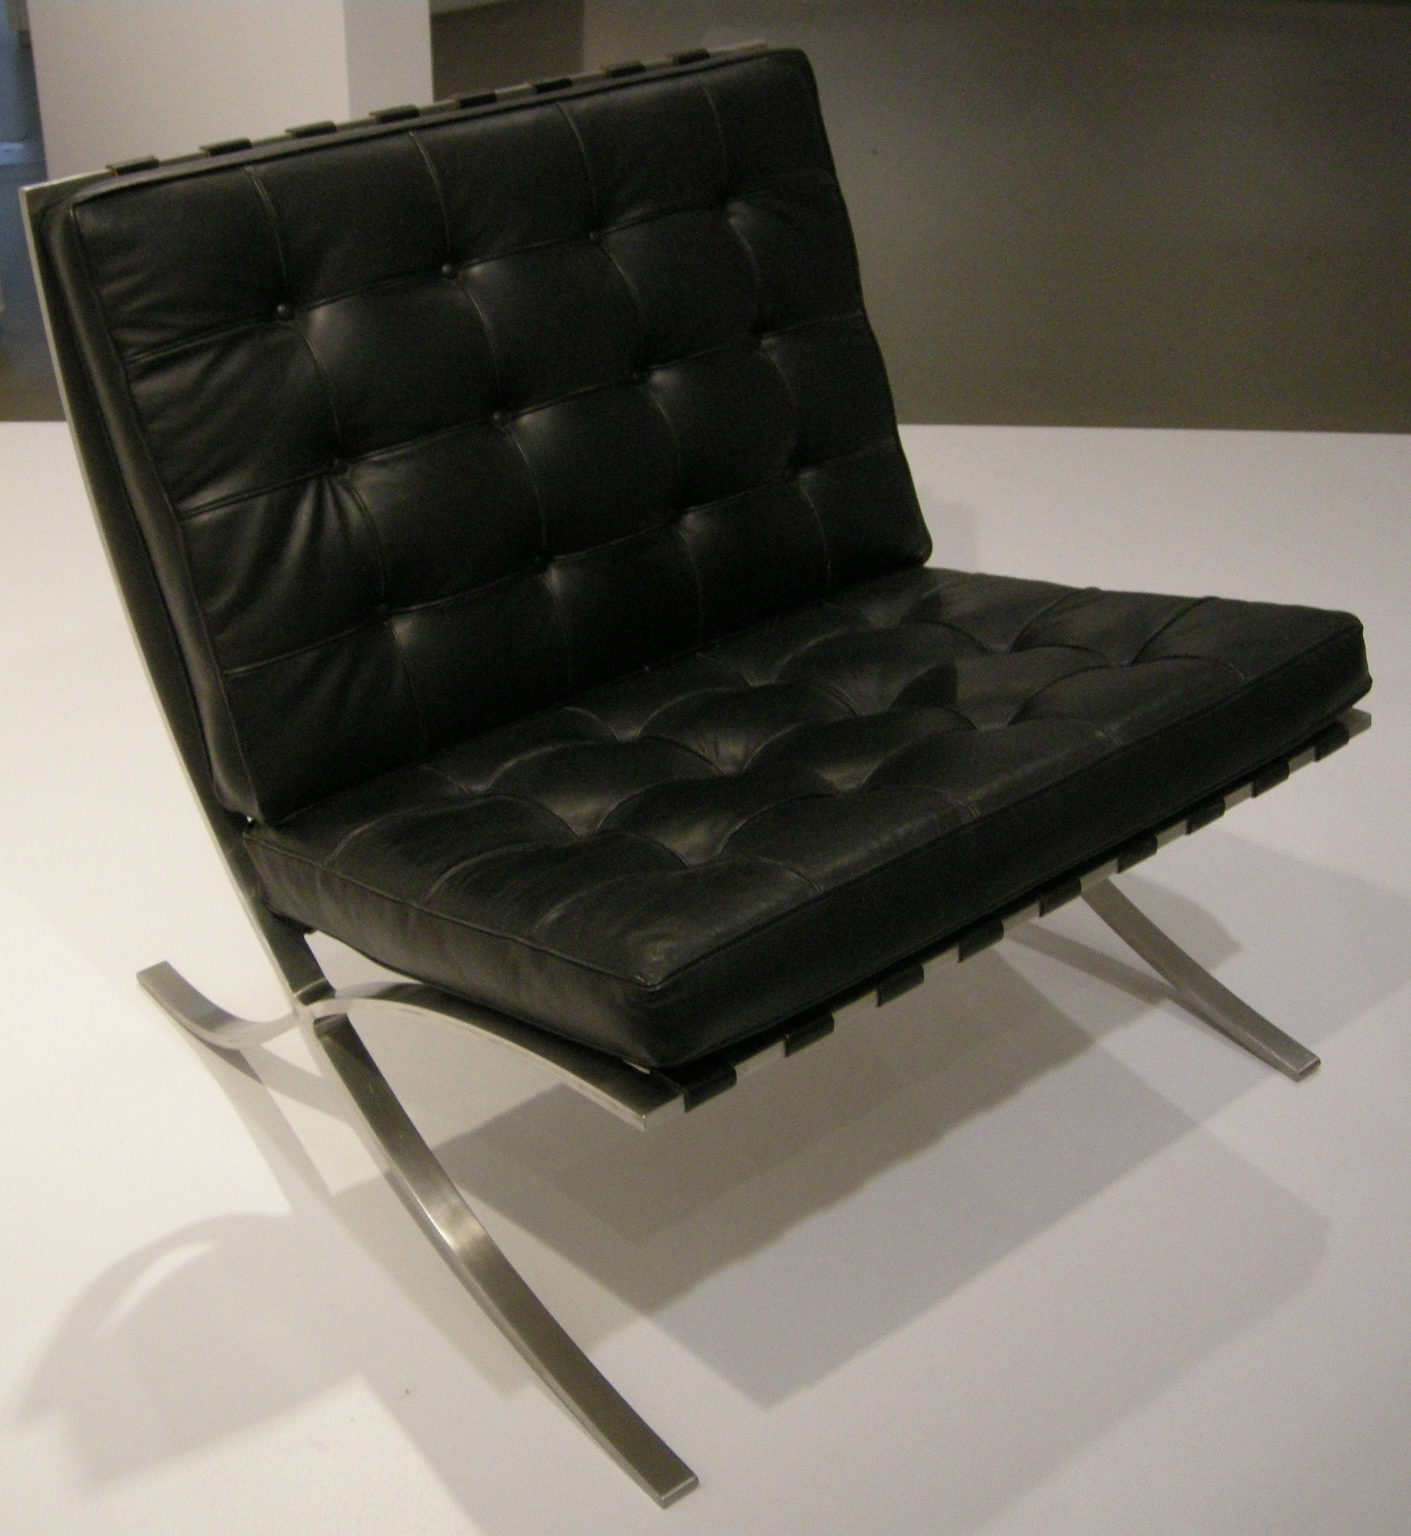 file ngv design ludwig mies van der rohe co barcelona. Black Bedroom Furniture Sets. Home Design Ideas